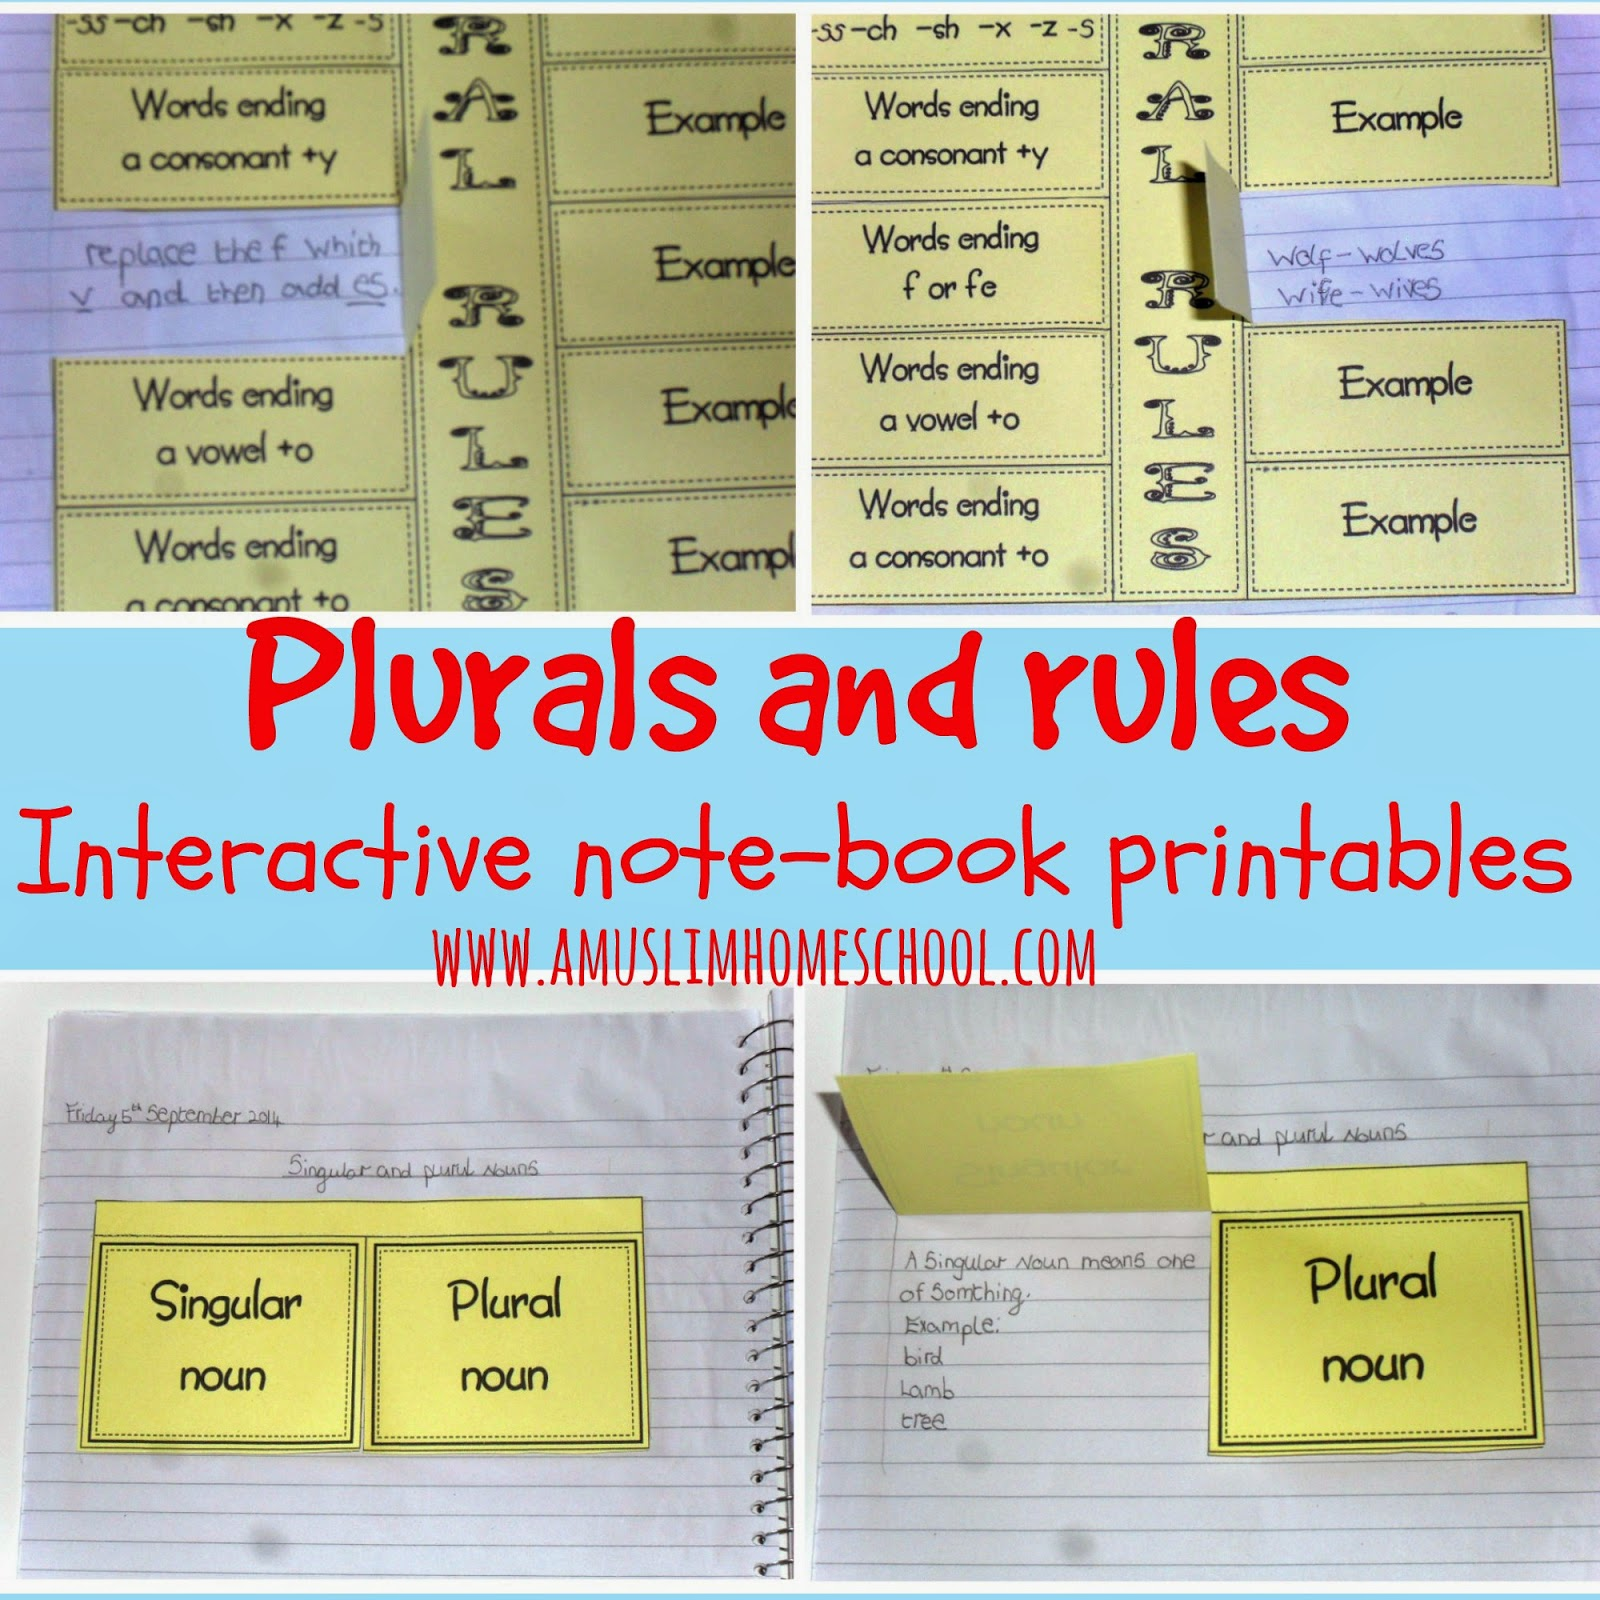 plural rules printable worksheets for interactive note books